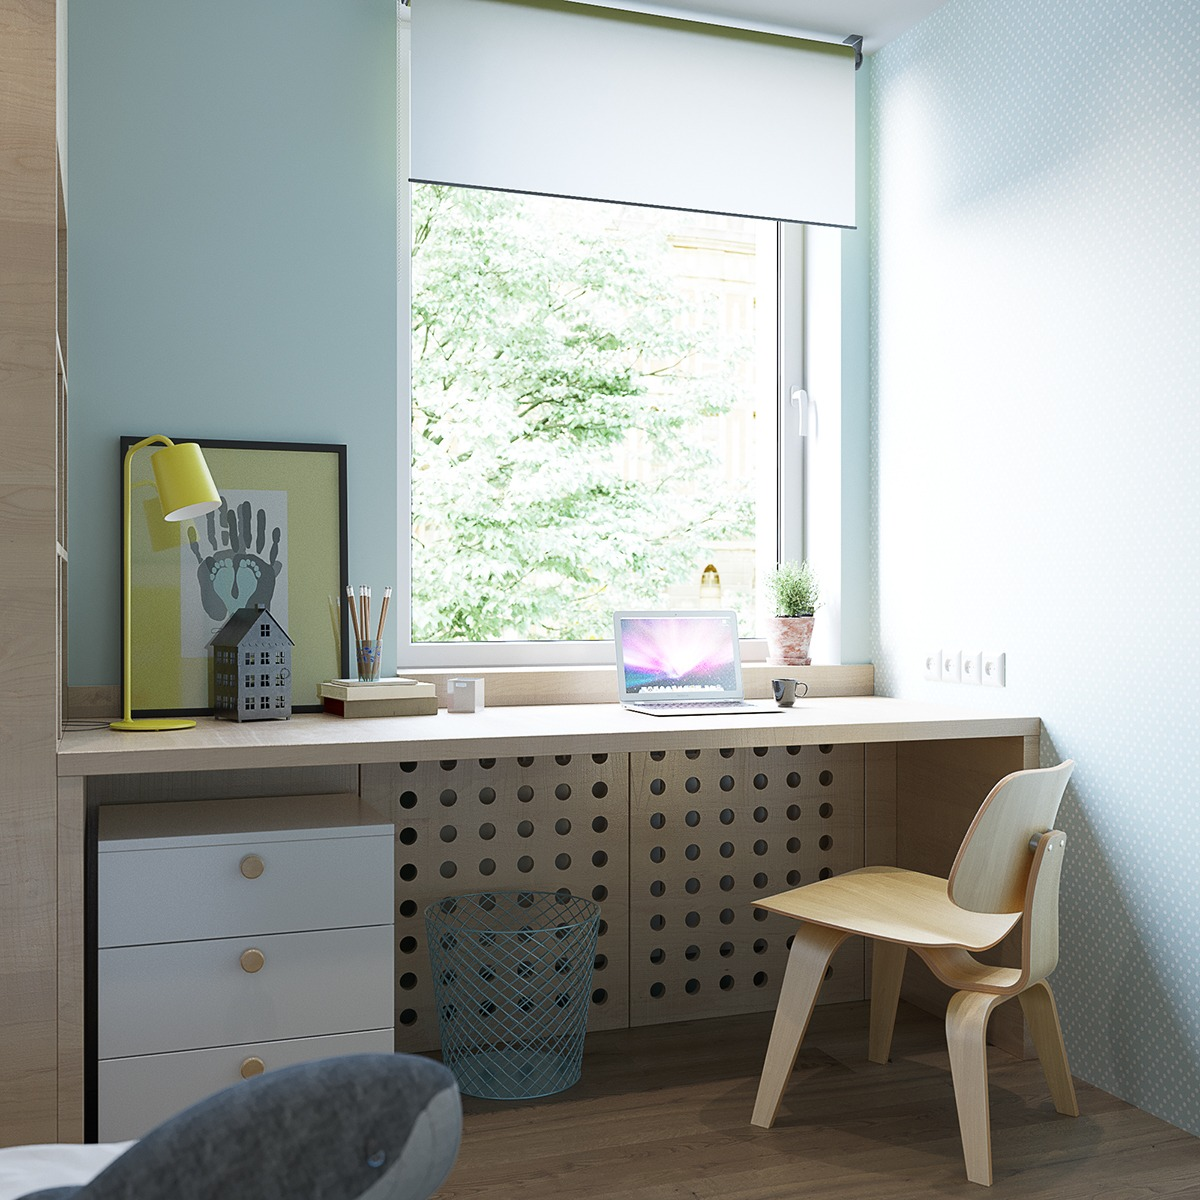 Builtin Desk Workspace Children Room Cabinets - 2 stunningly beautiful homes decorated in modern scandinavian style